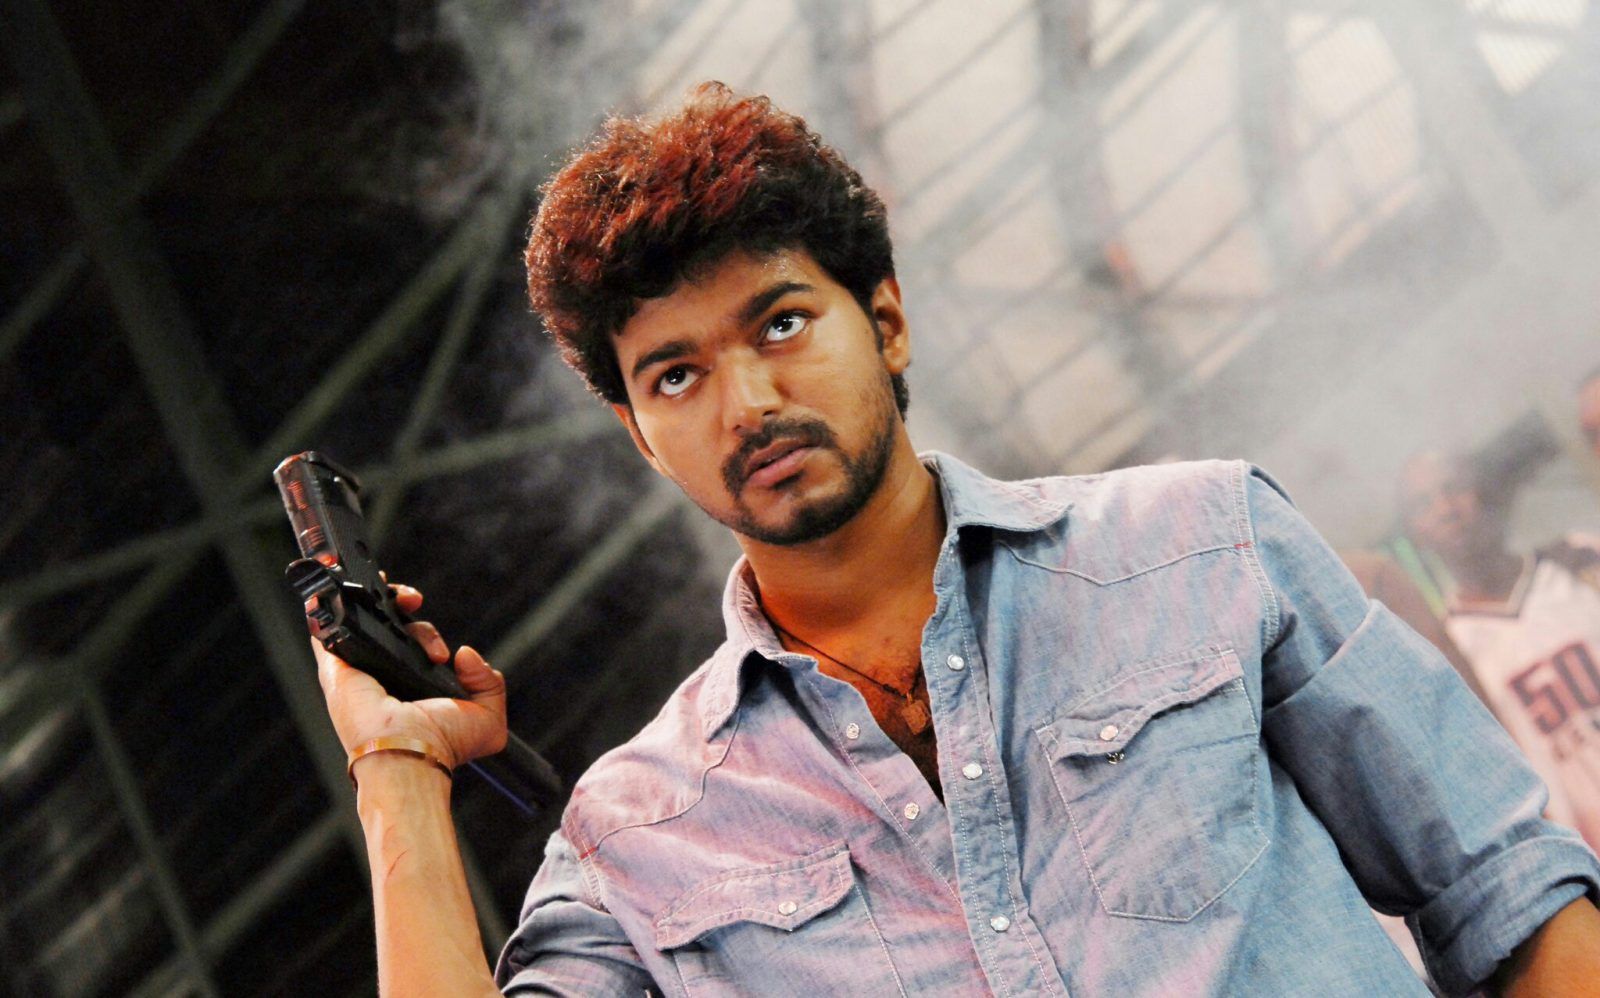 Vijay with gun